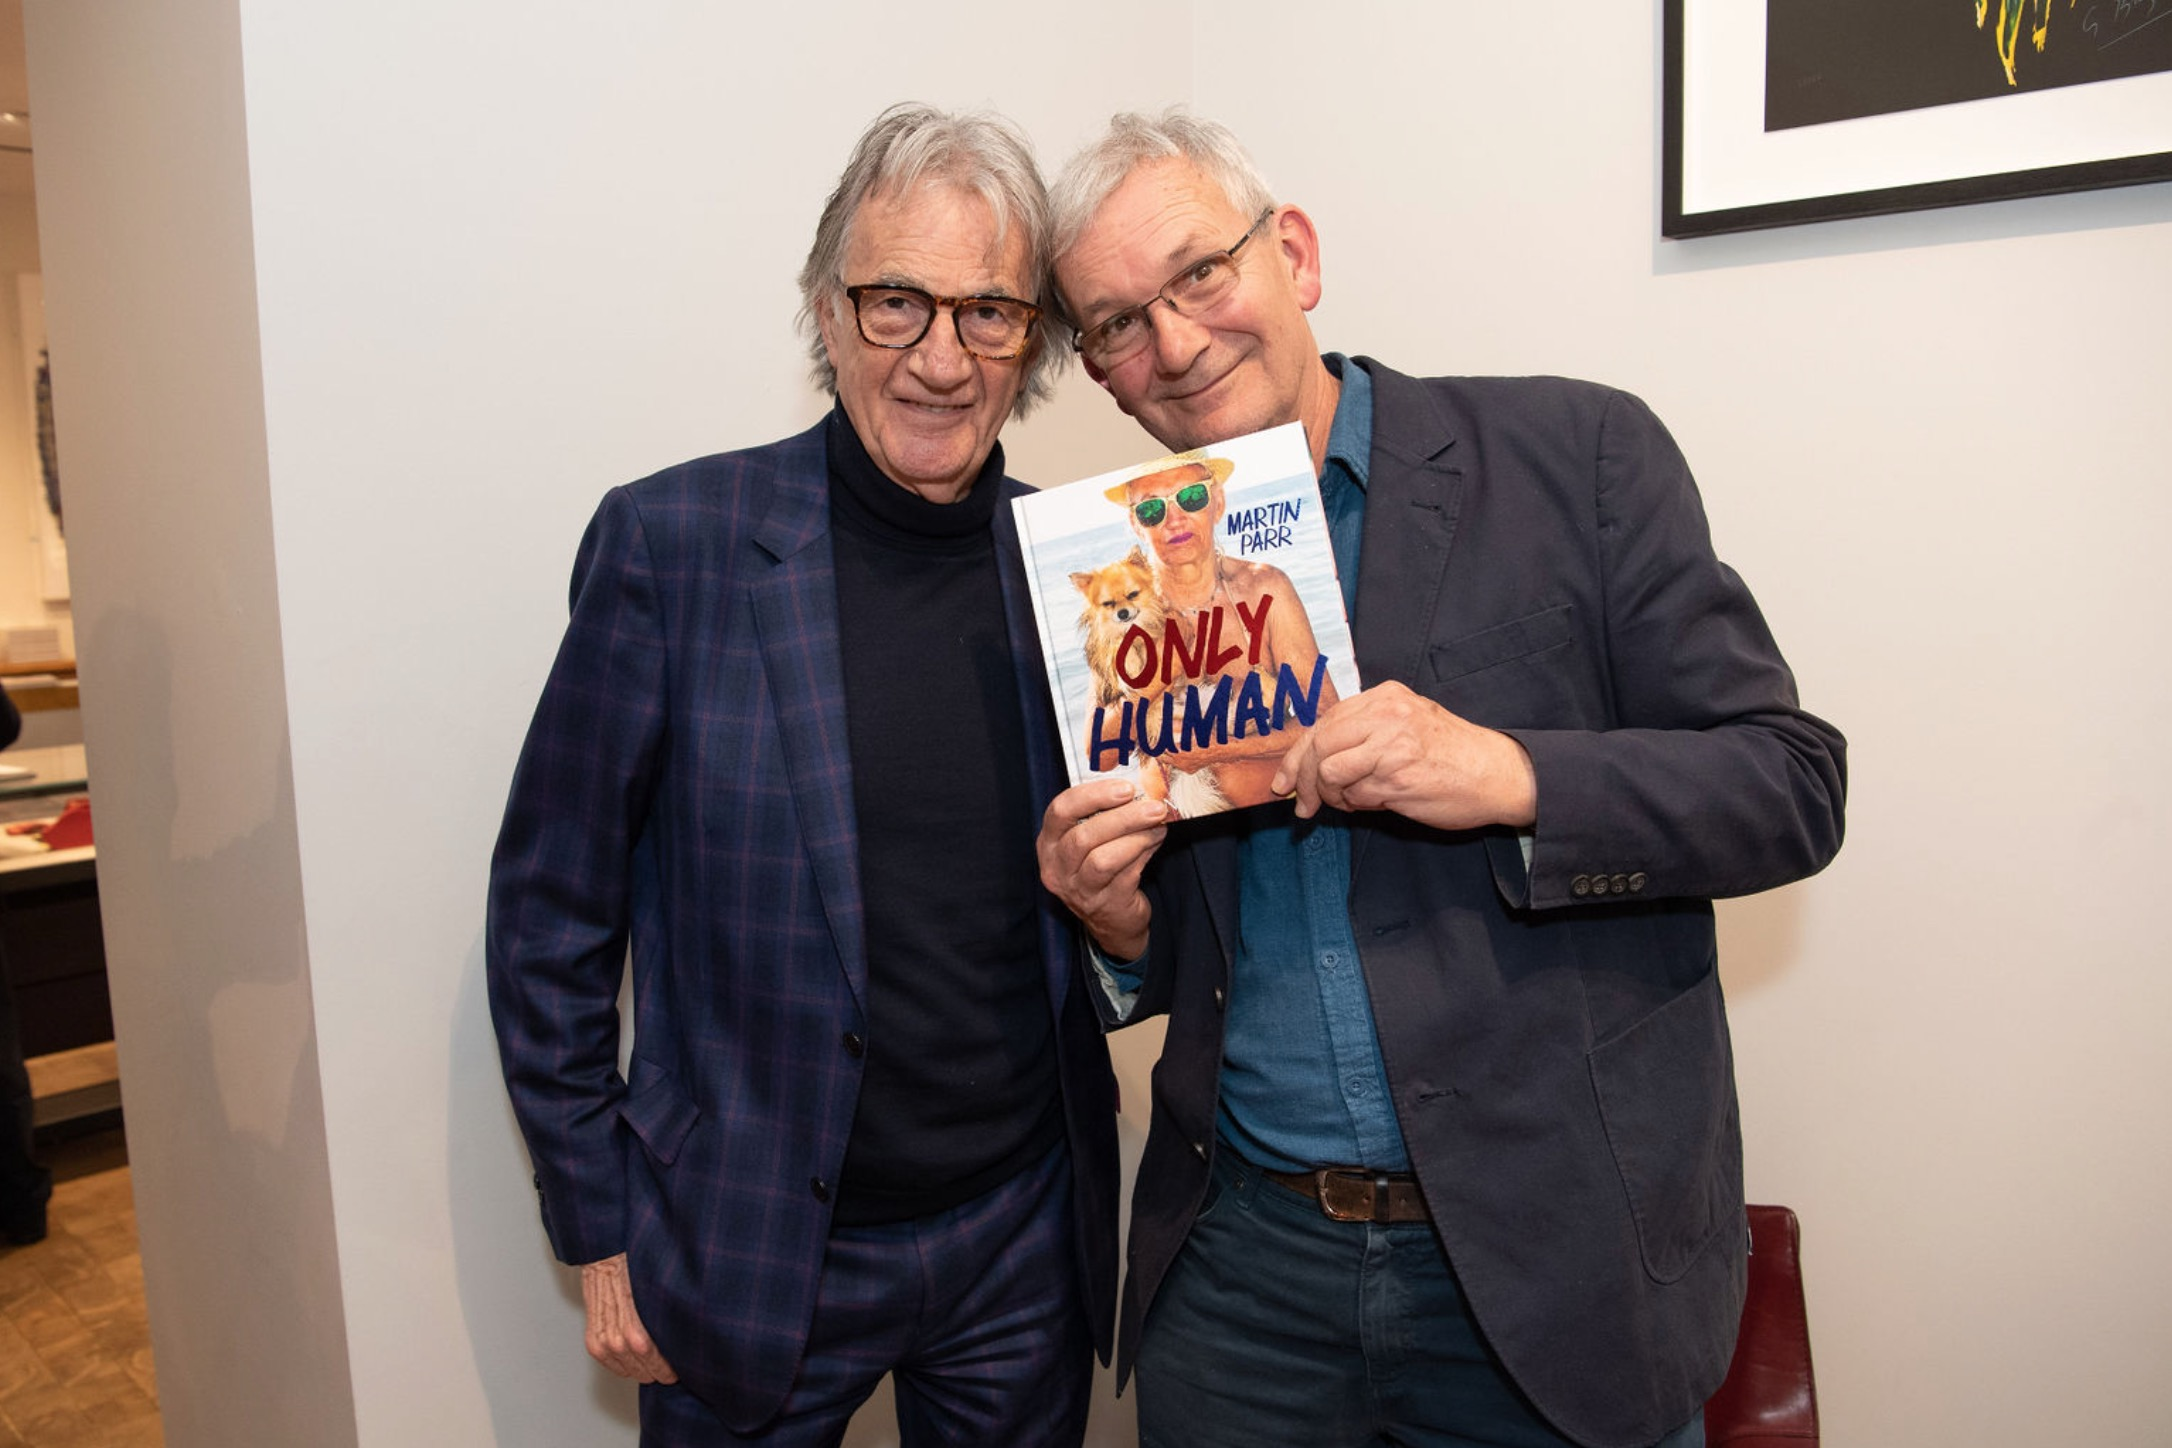 Paul Smith threw a party for Martin Parr this week!